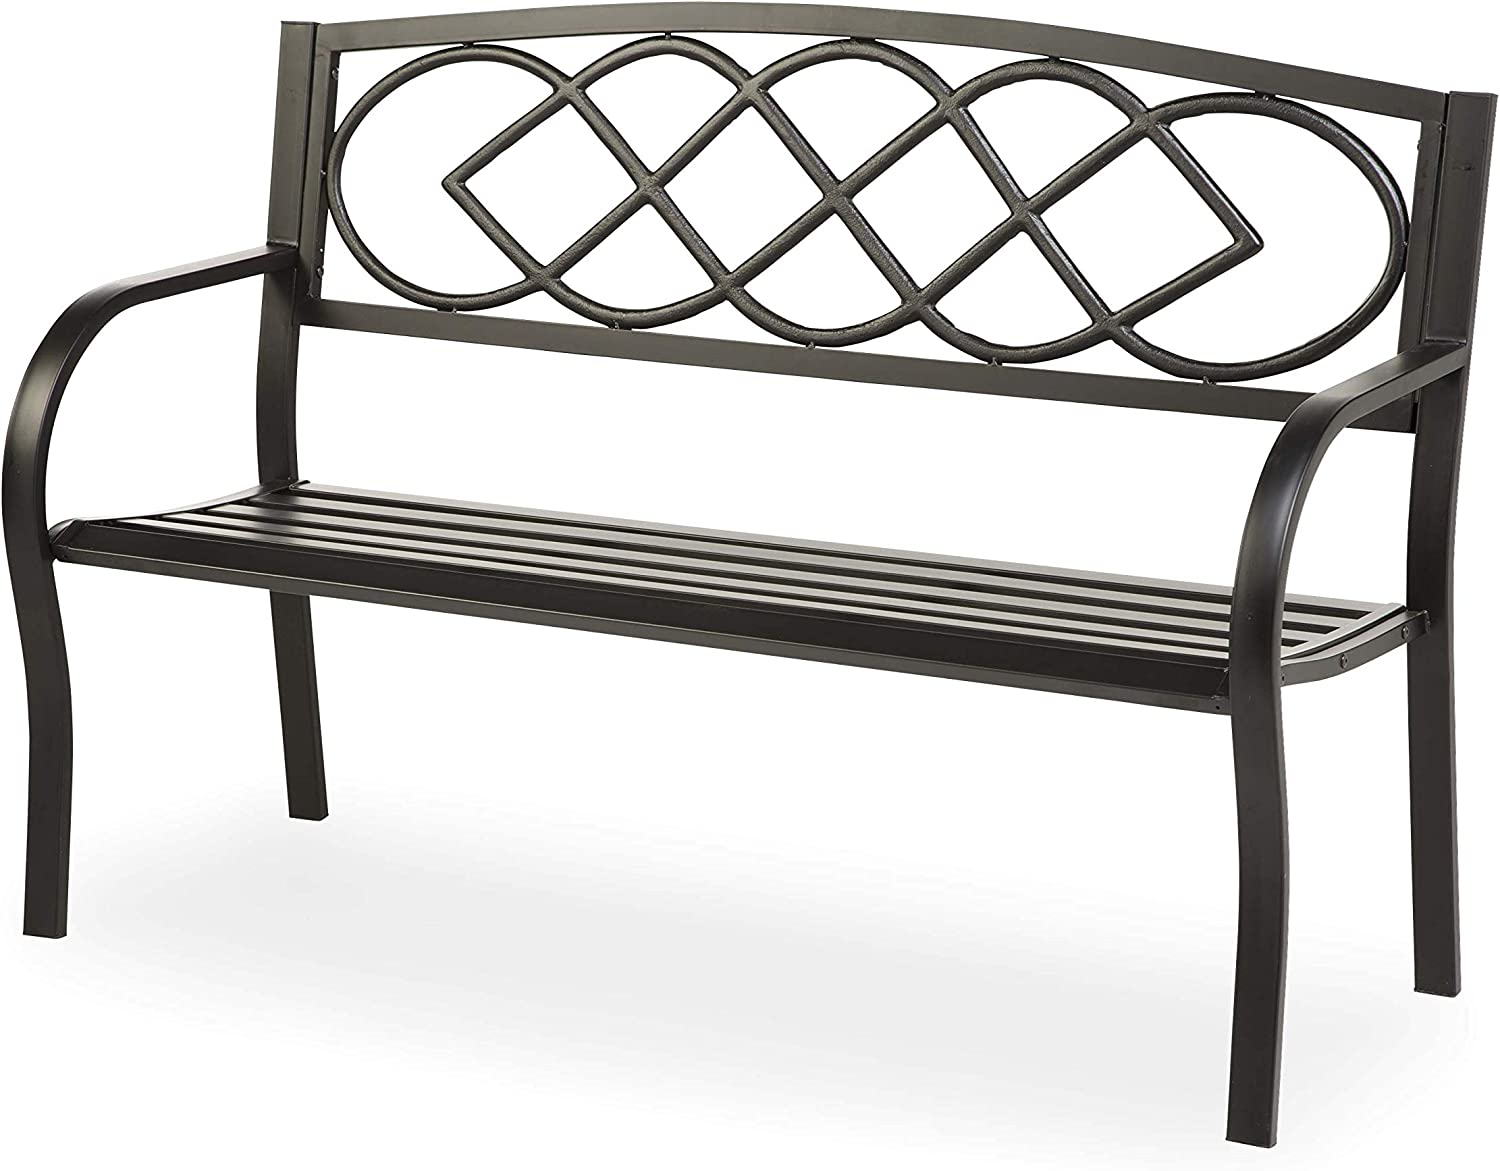 Plow & Hearth Celtic Knot Patio Garden Bench Park Yard Outdoor Furniture, Cast and Tubular Iron Metal, Powder Coat Black Finish, Classic Decorative Design, Easy Assembly 50 L x 17 1/2 W x 34 1/2 H